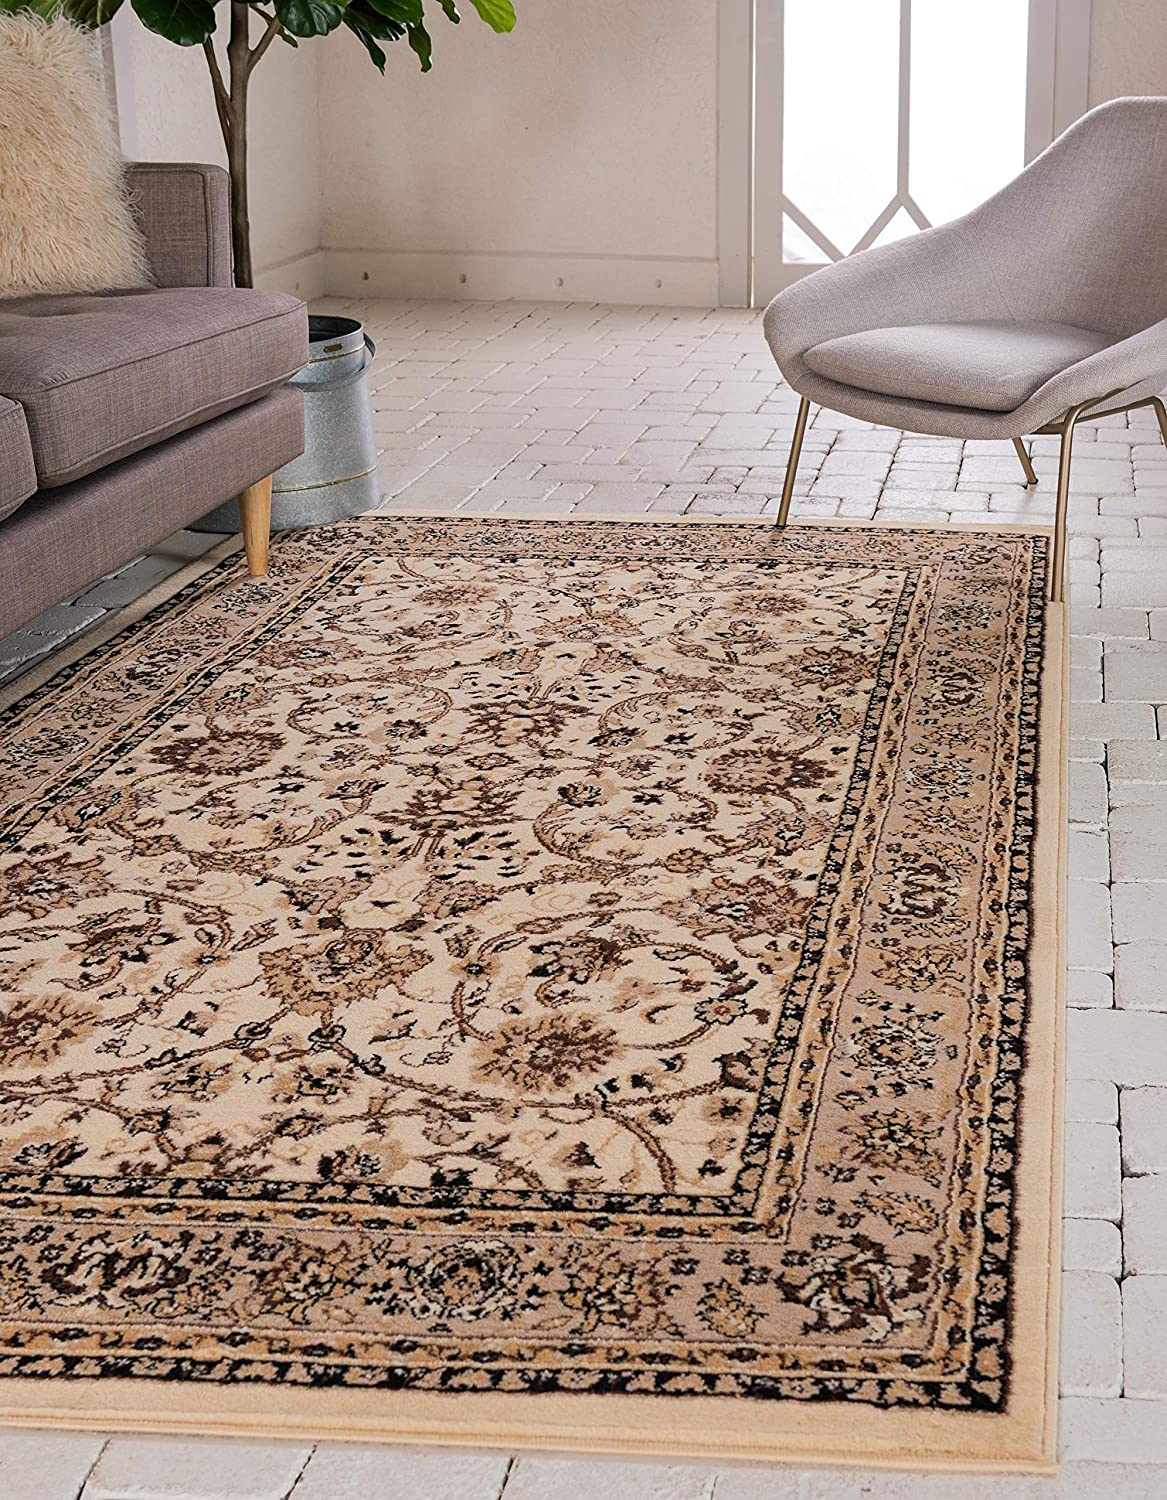 Unique Loom Kashan Collection Traditional Floral Overall Pattern with Border Ivory Area Rug (8' 0 x 10' 0)